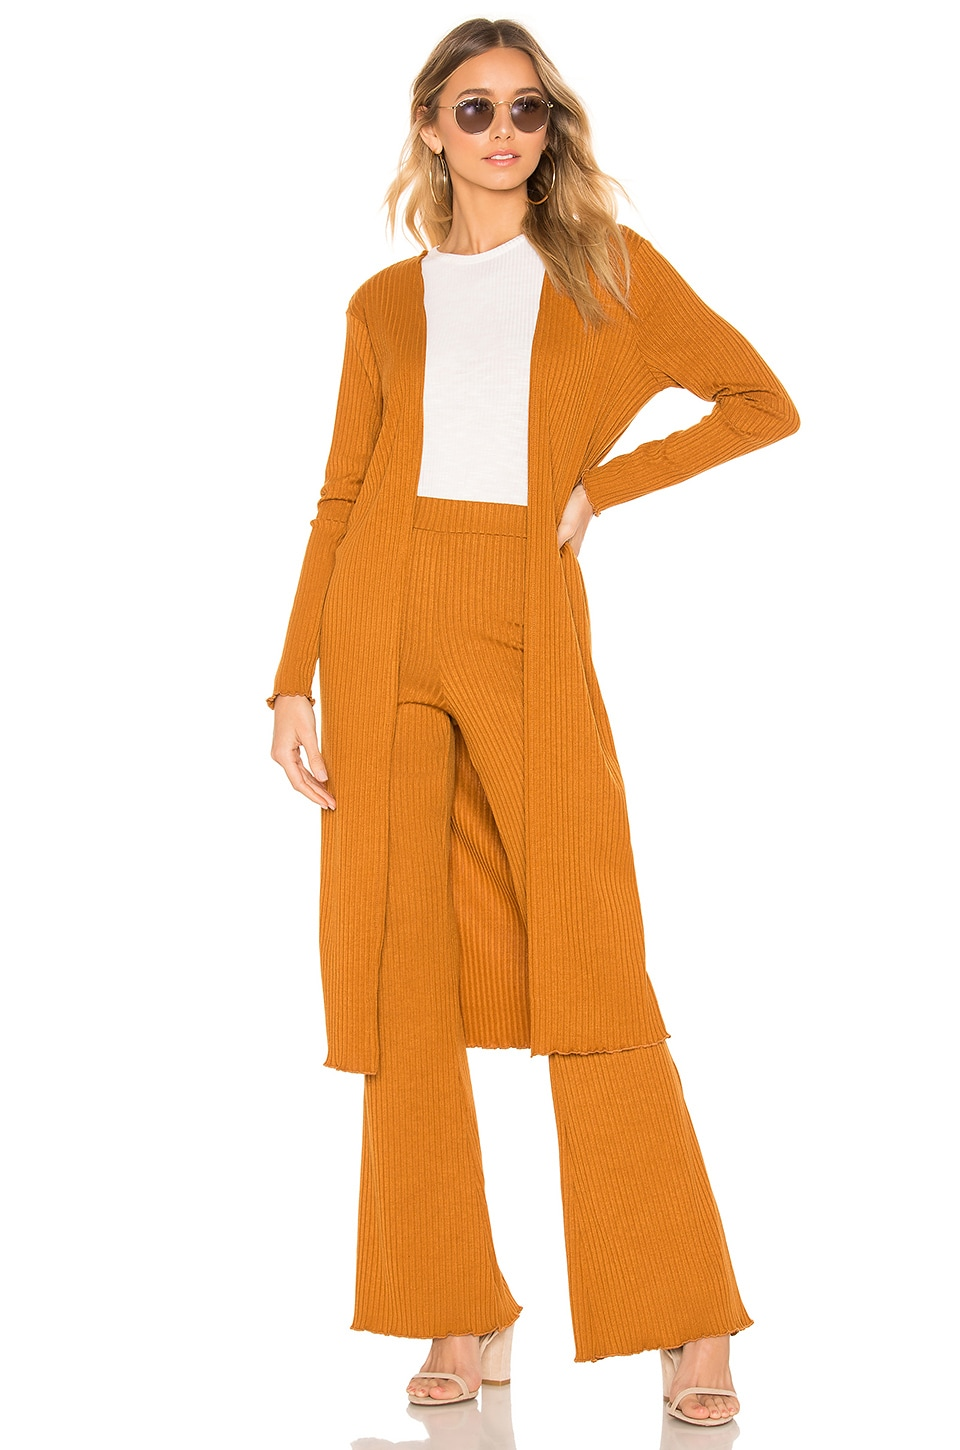 House of Harlow 1960 House of Harlow x Revolve 1960 James Cardigan in Toffee